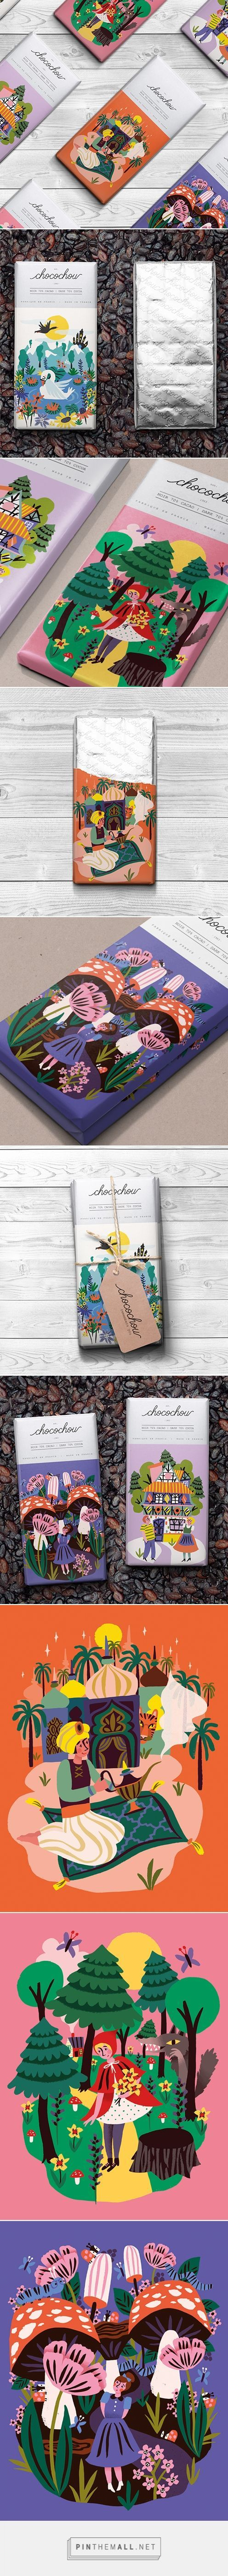 Graphic design, illustration and packaging for Fairytale Chocolate Bars